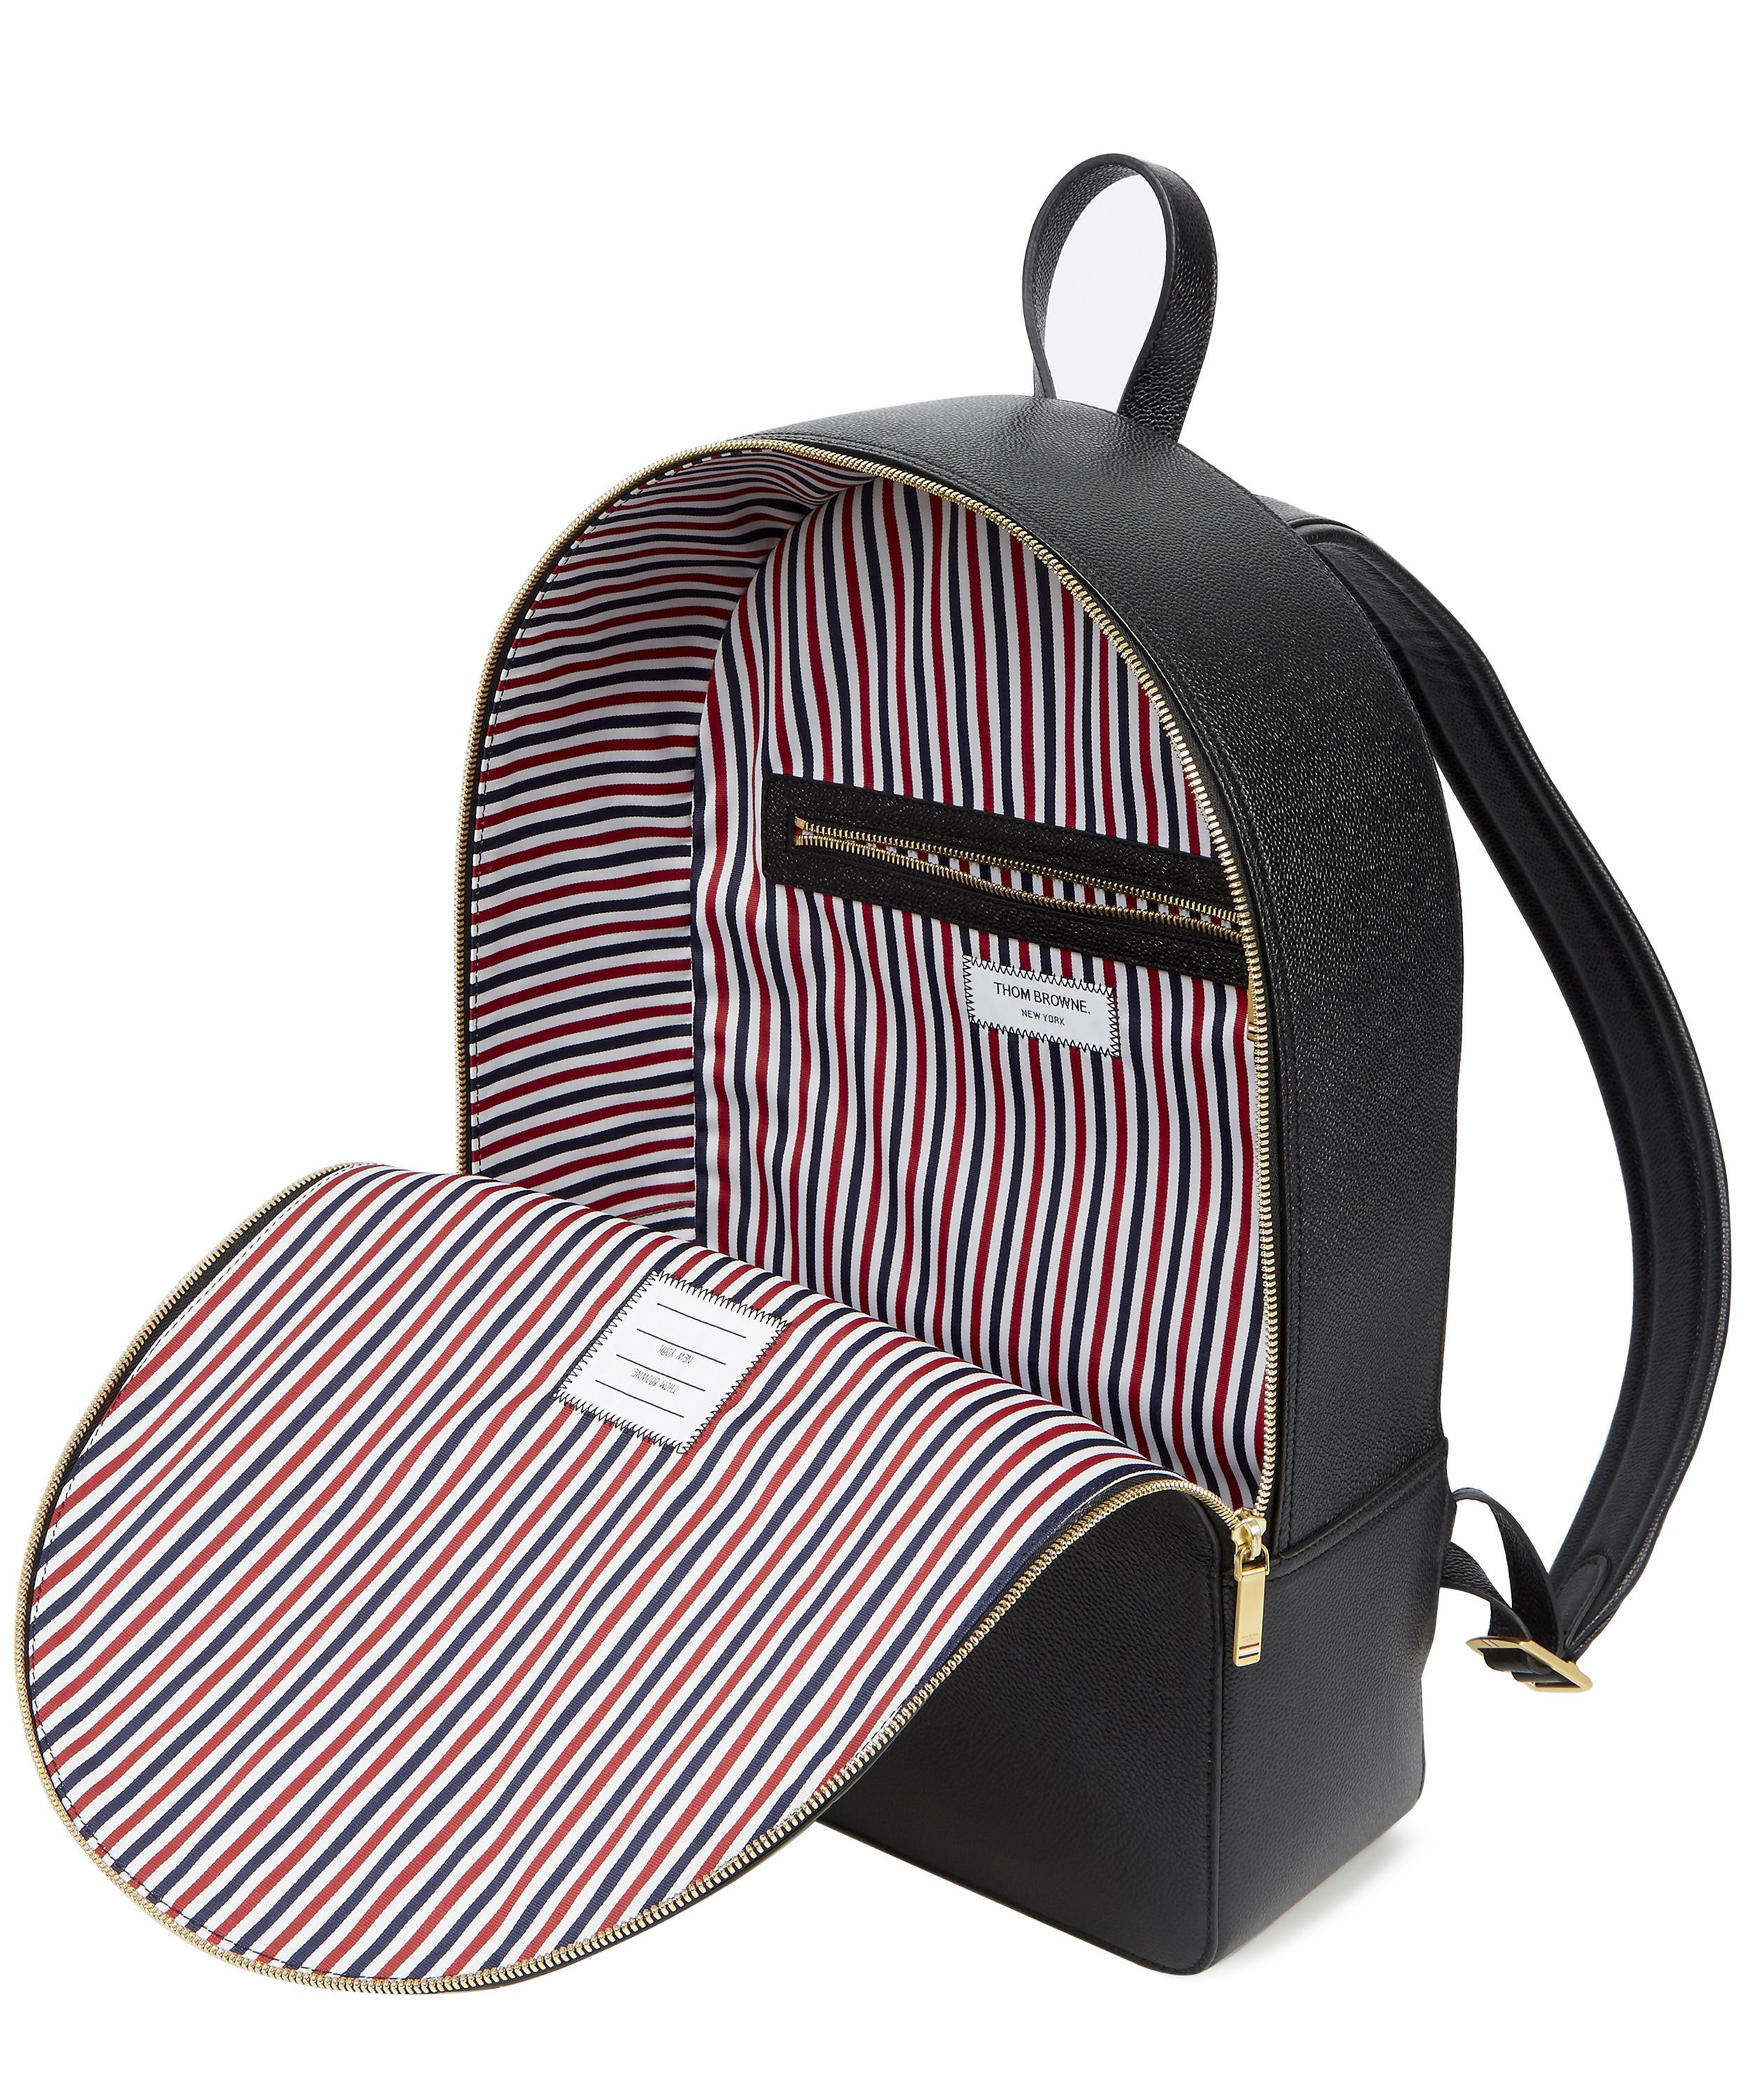 a869d9ee5d Lyst - Thom Browne Pebbled Leather Diagonal Stripe Backpack in Black